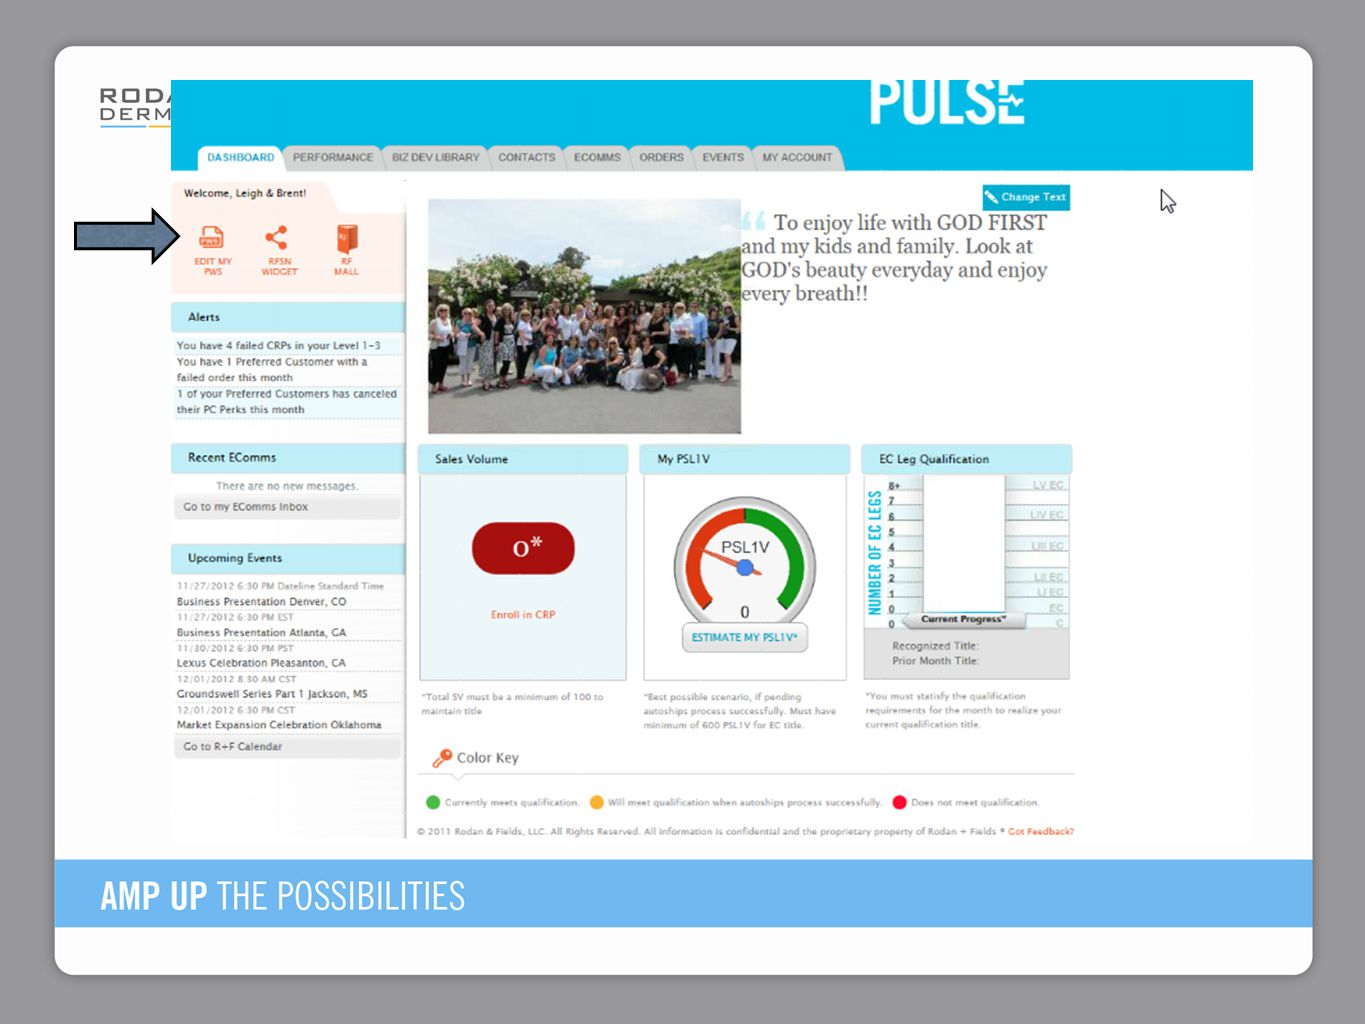 The arrow on top left shows you where to edit their personal website and order business cards in PULSE.